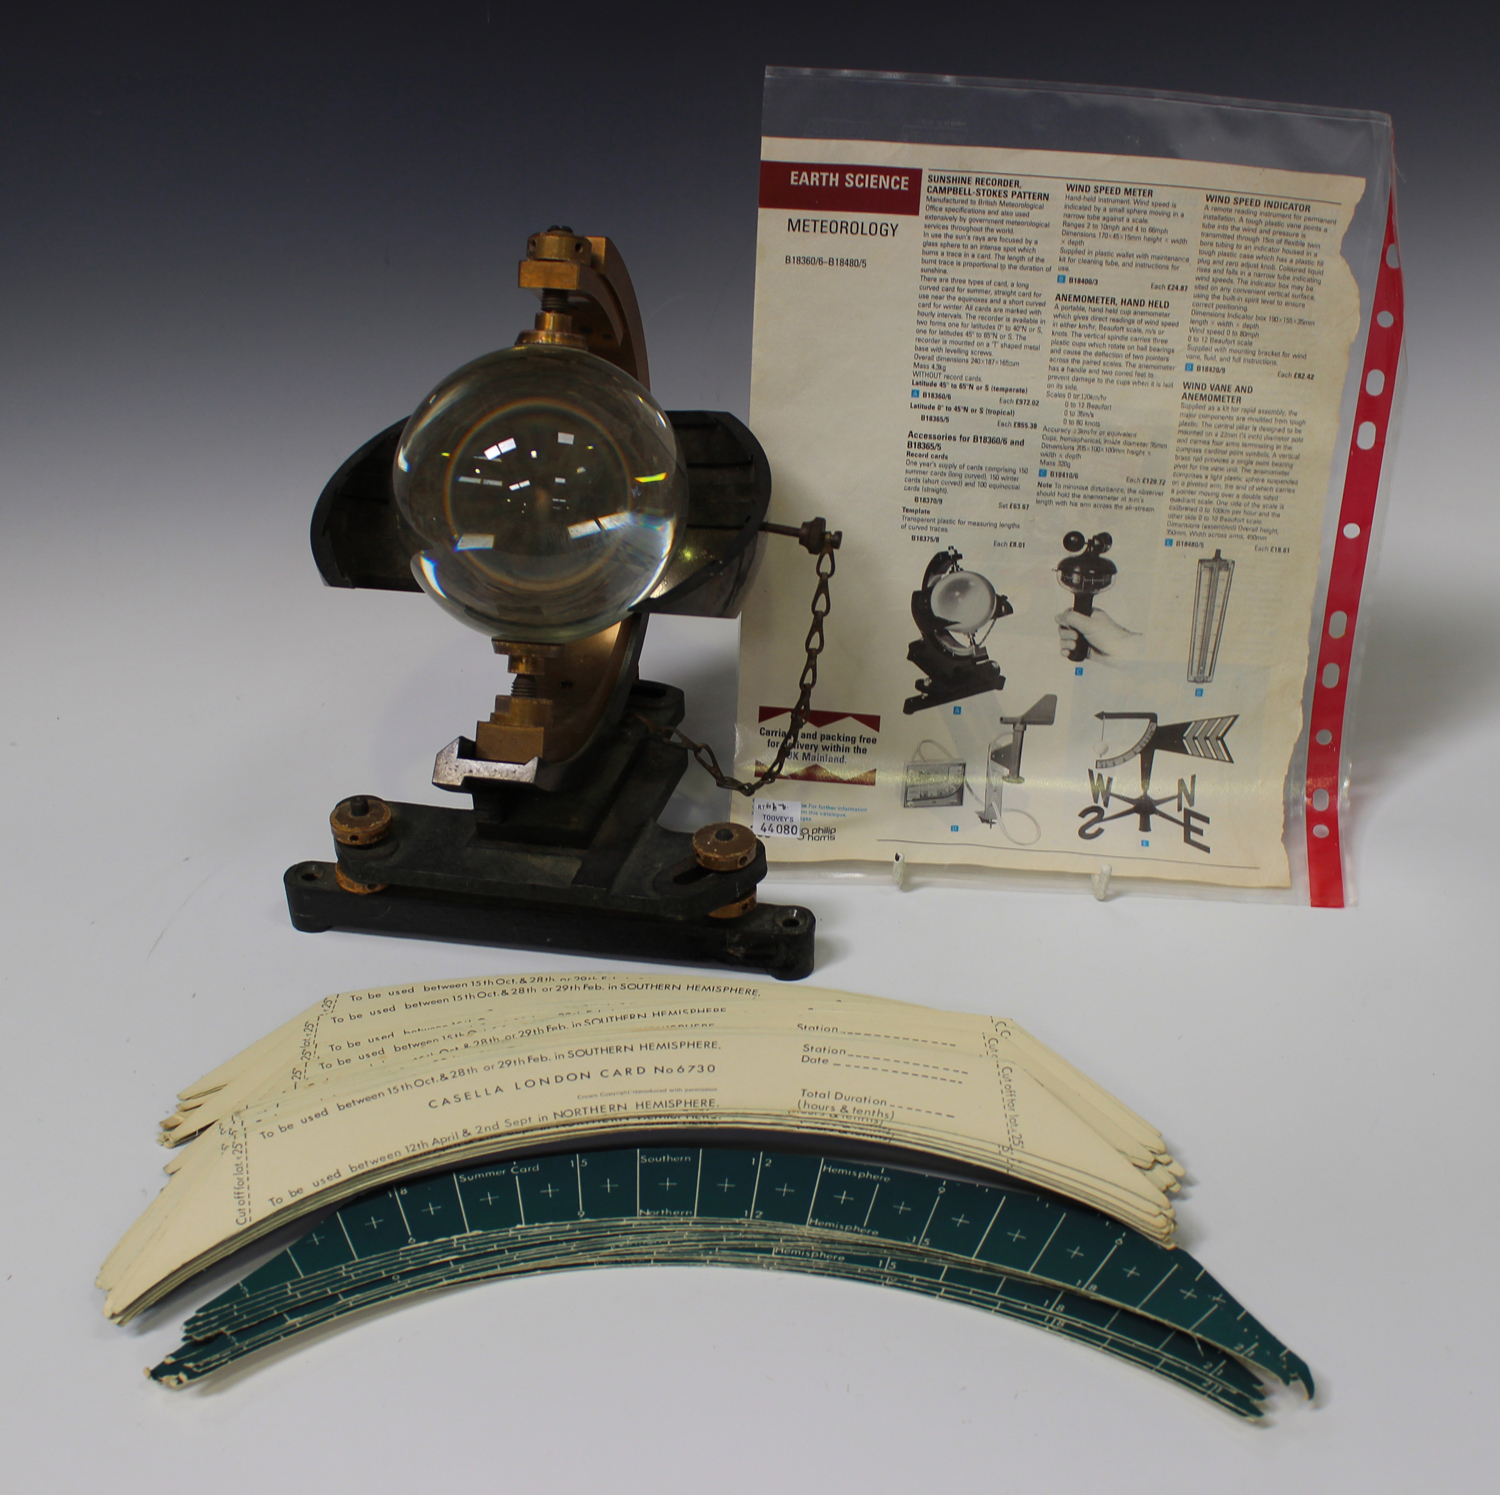 Lot 1176 - A Campbell-Stokes pattern Sunshine Recorder by Casella of London, number '8881', the glass sphere